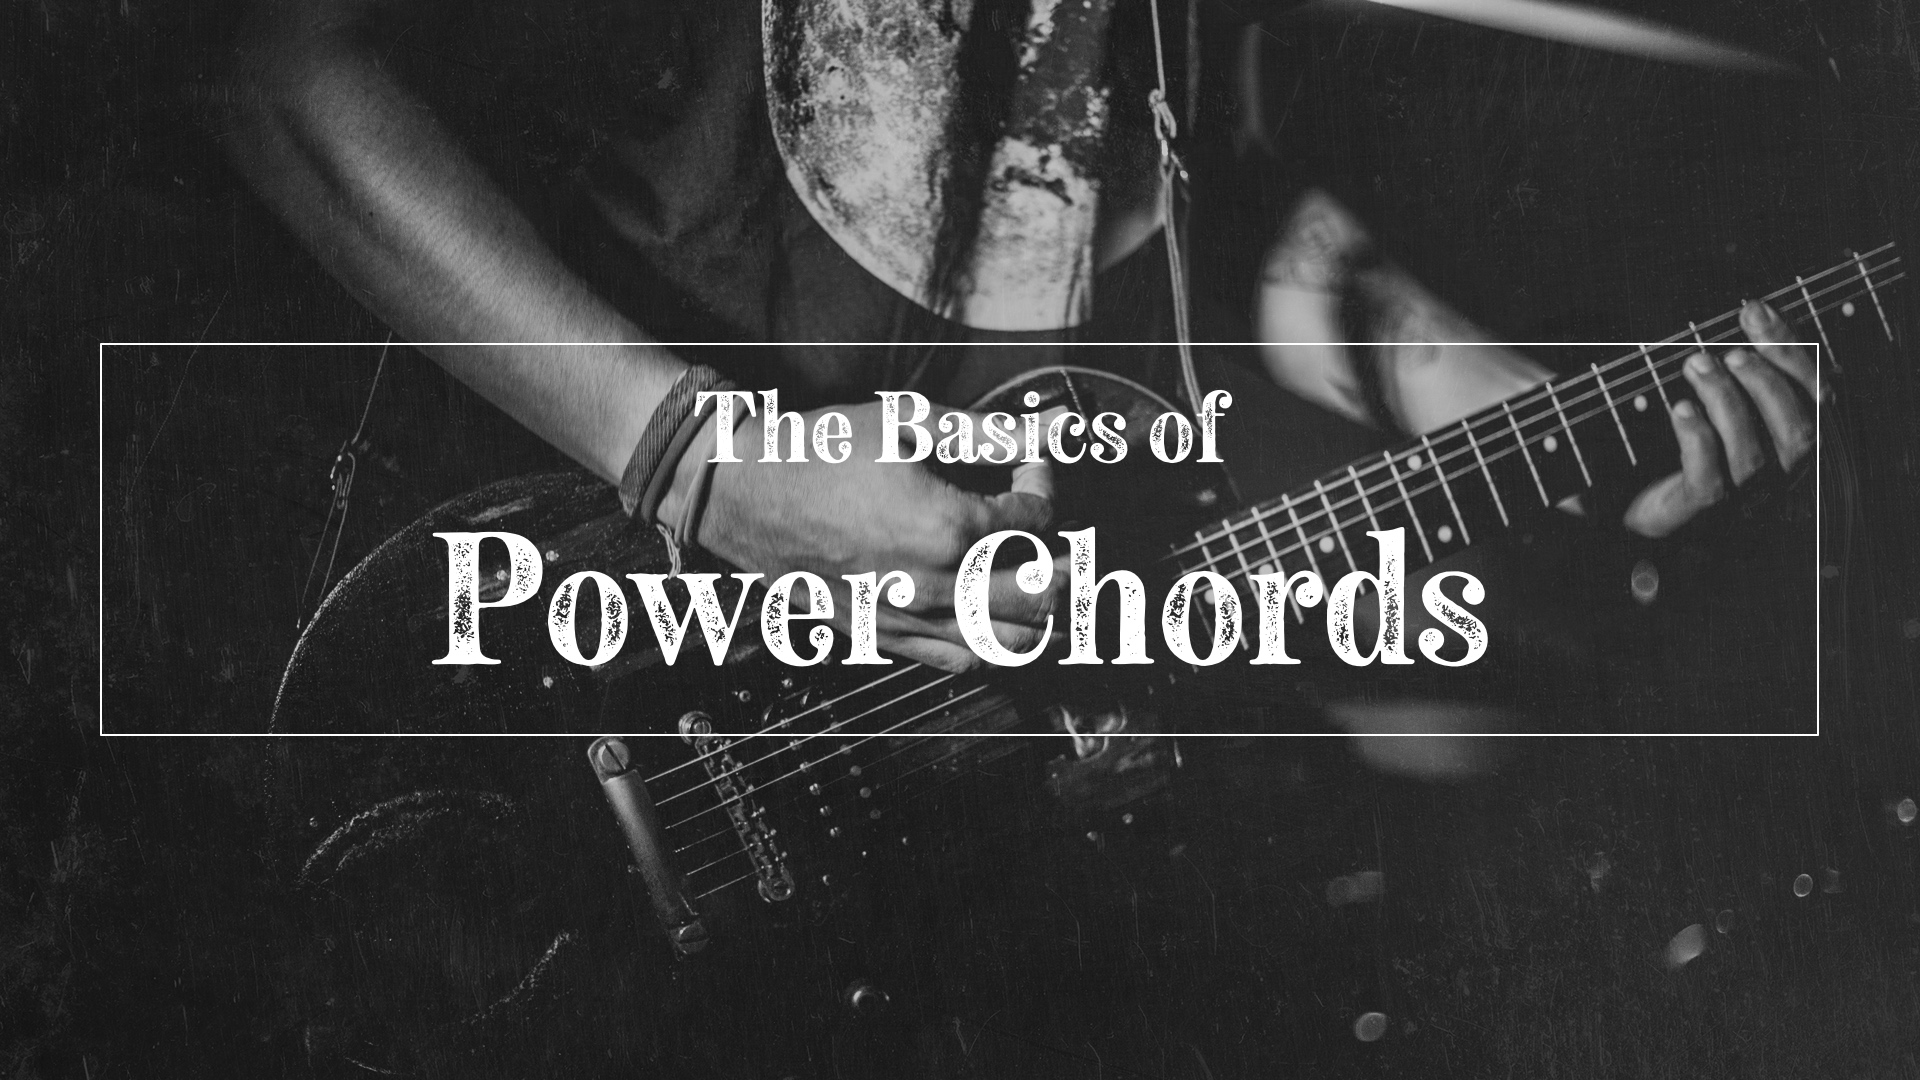 Guitarist playing basic power chords